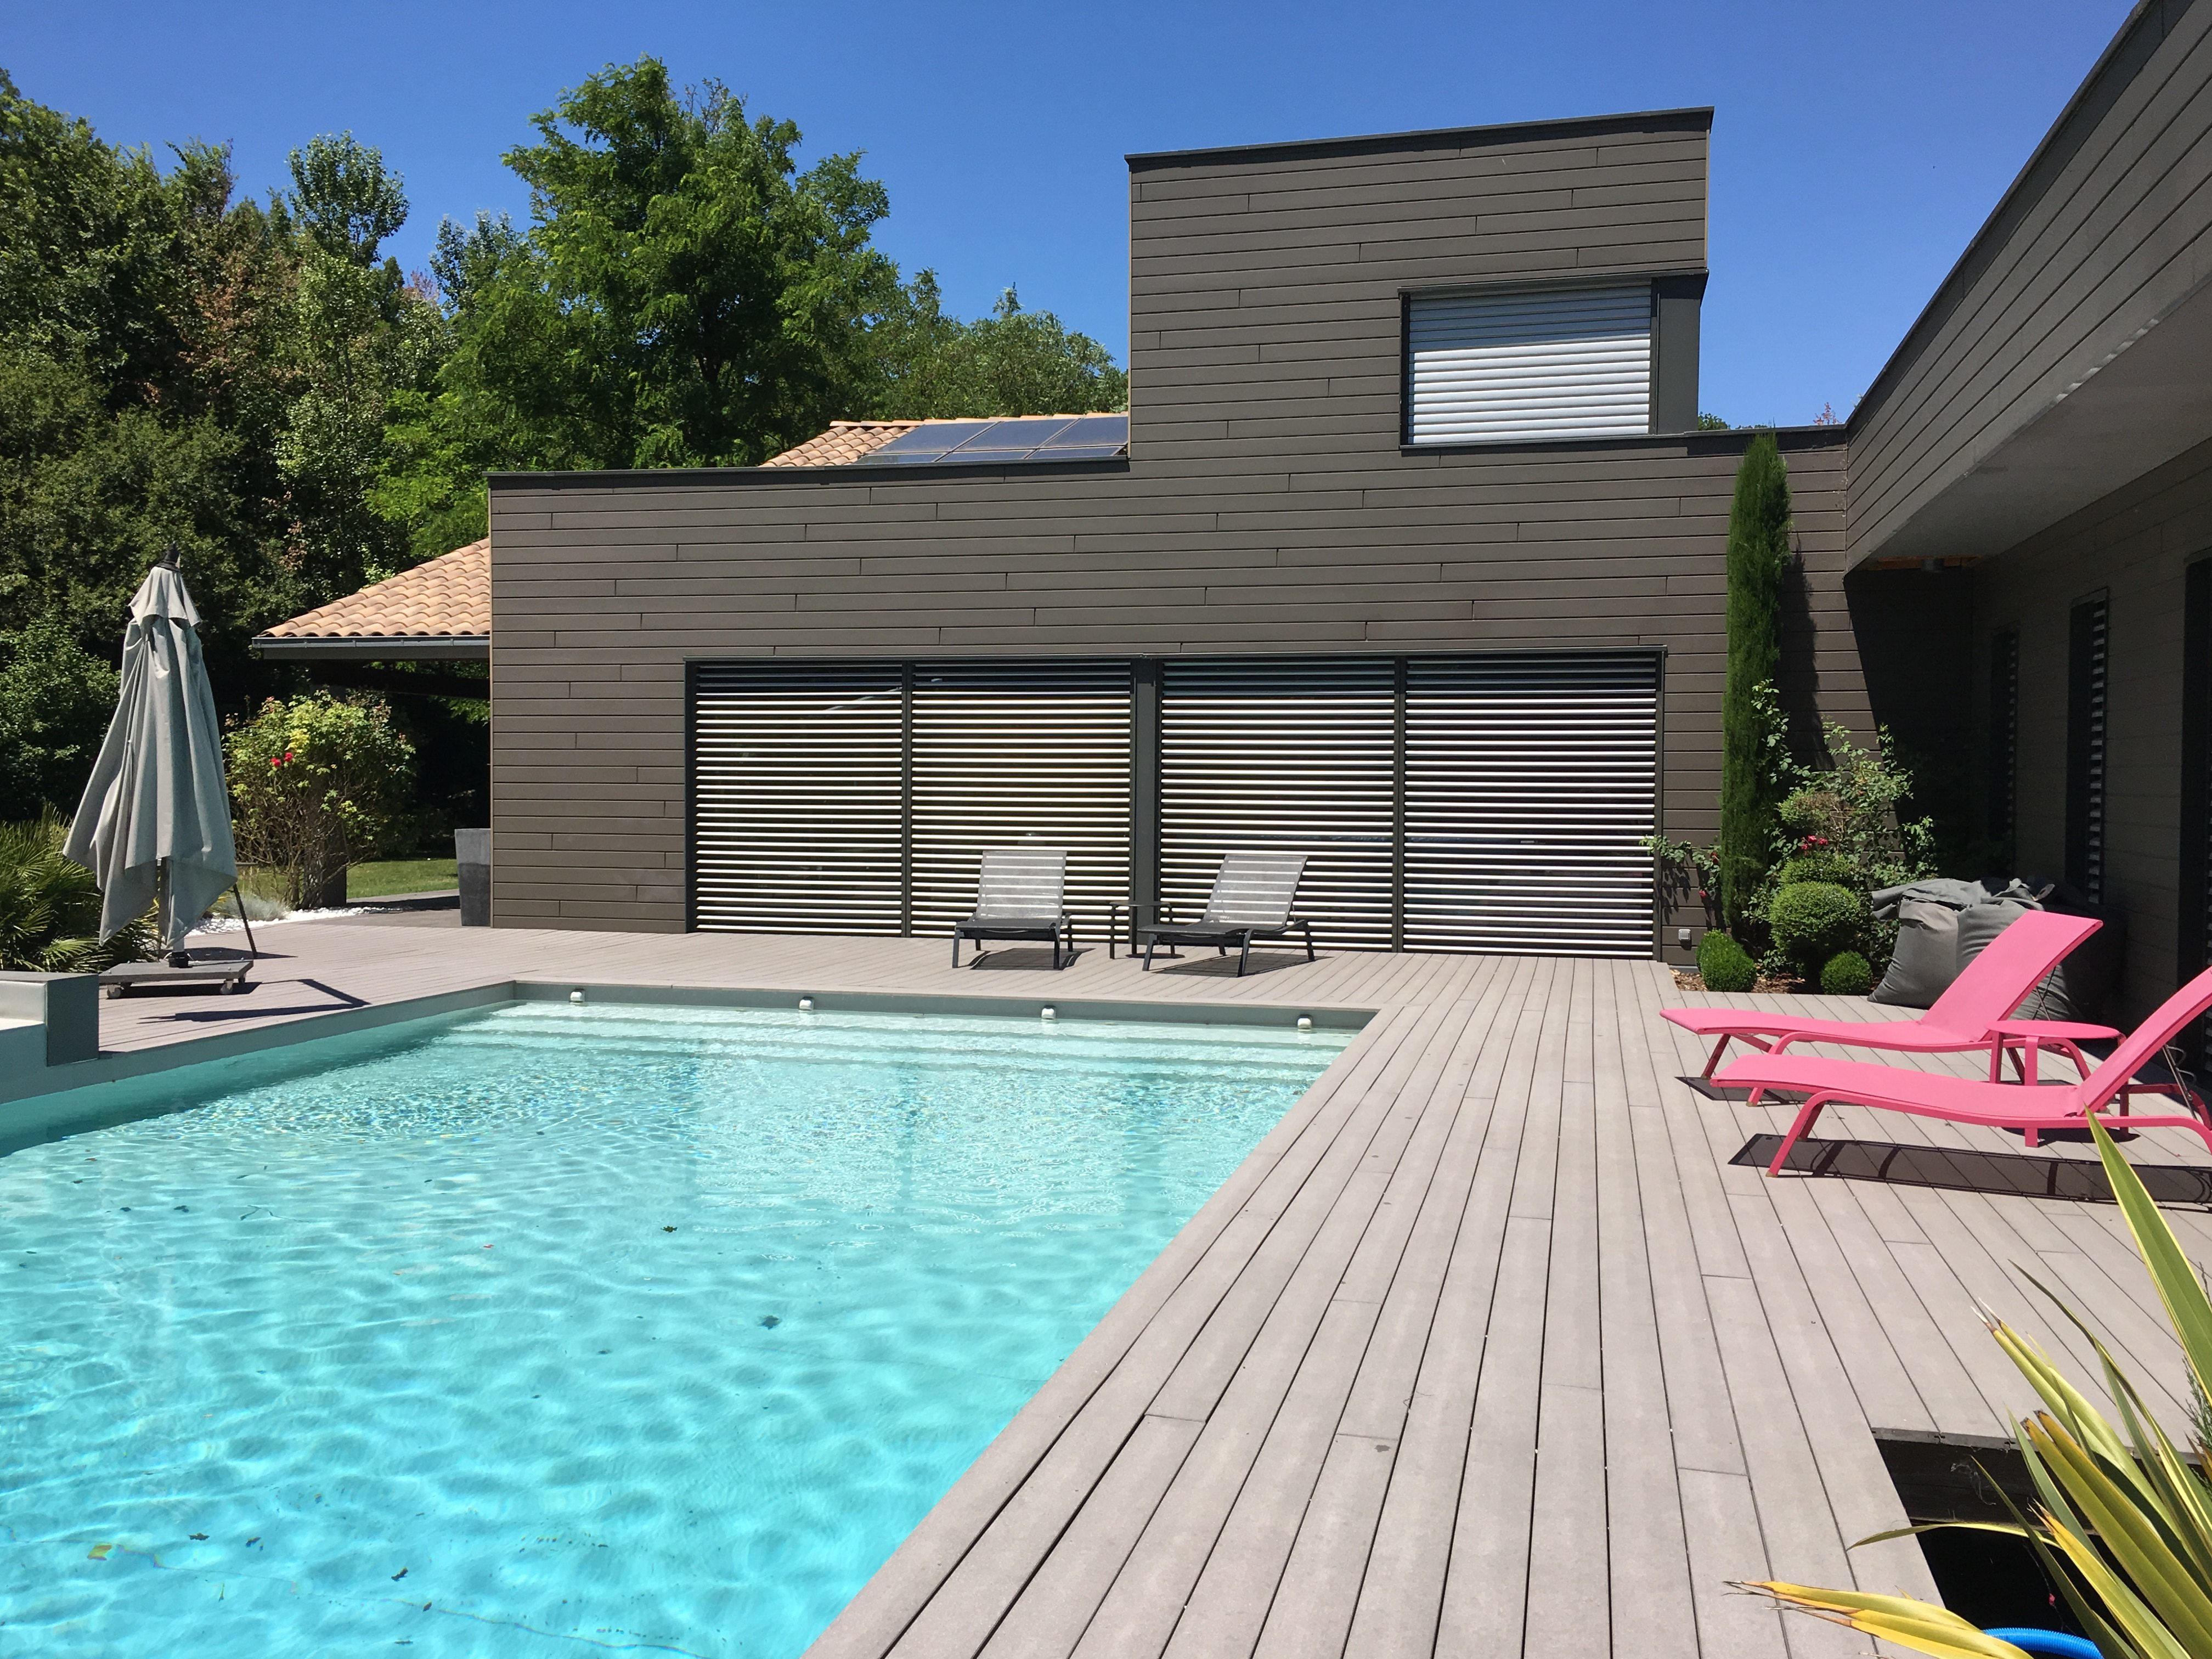 rare maison contemporaine avec piscine, Photo 6